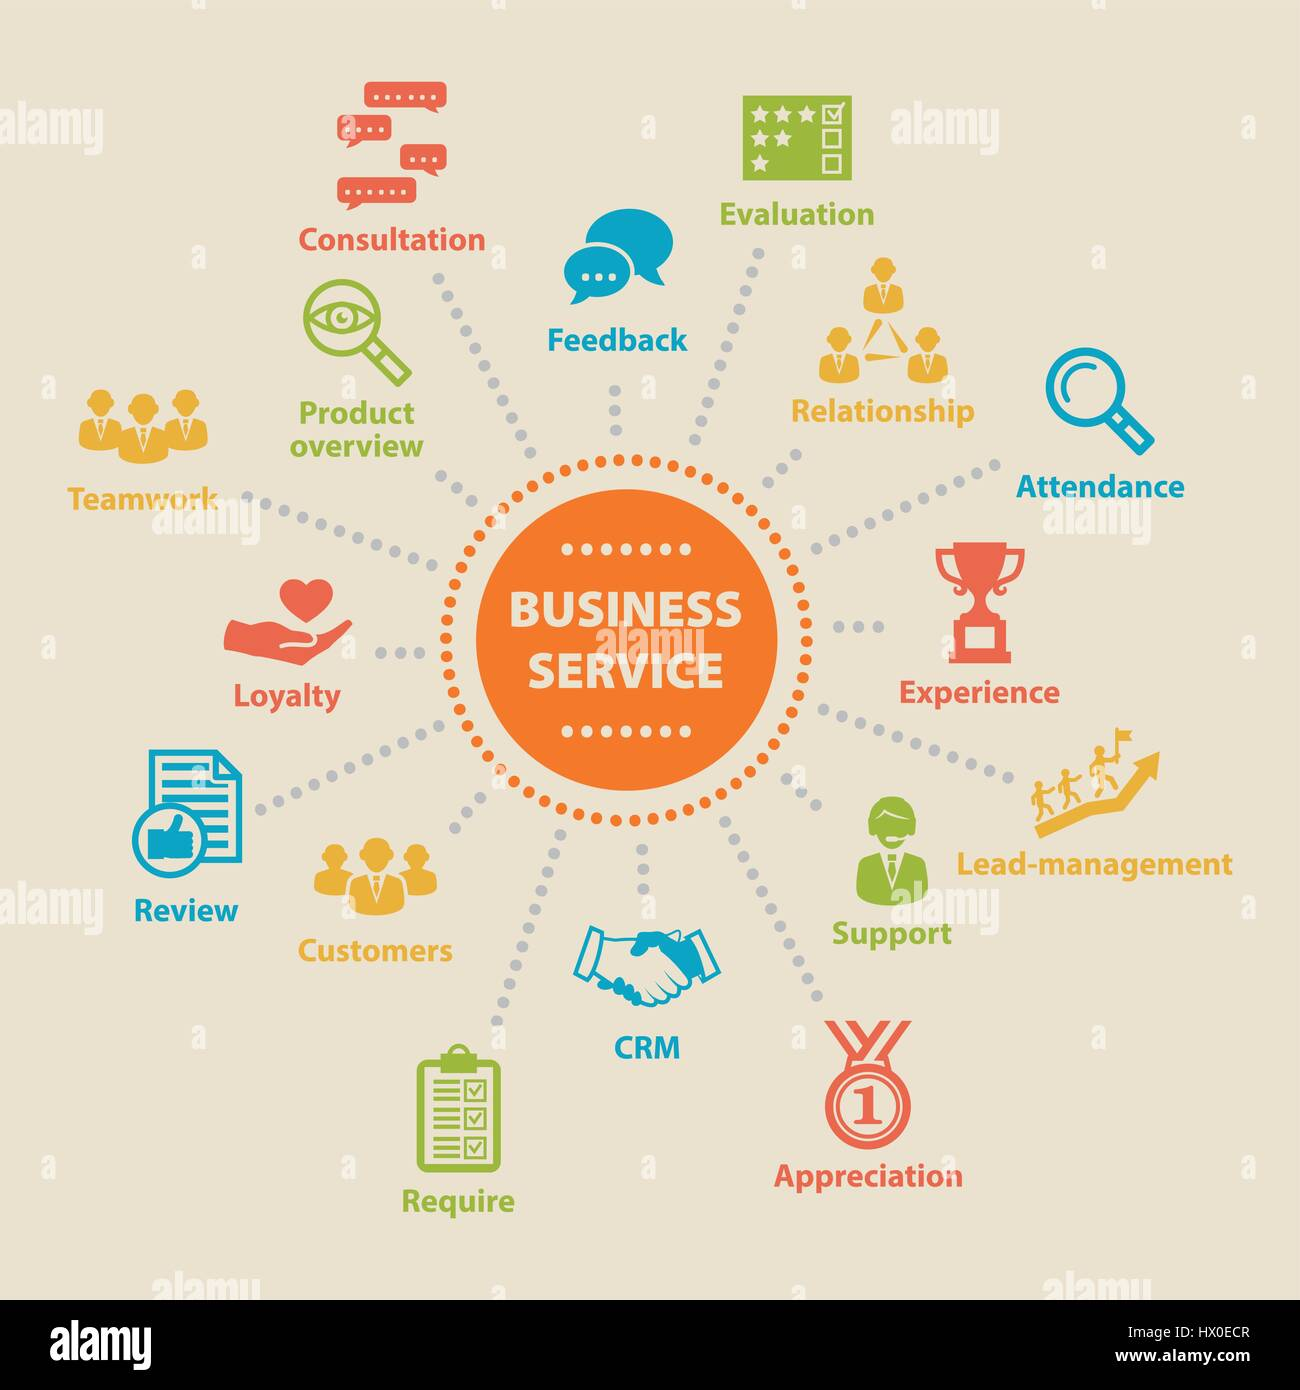 BUSINESS SERVICE Concept with icons - Stock Vector